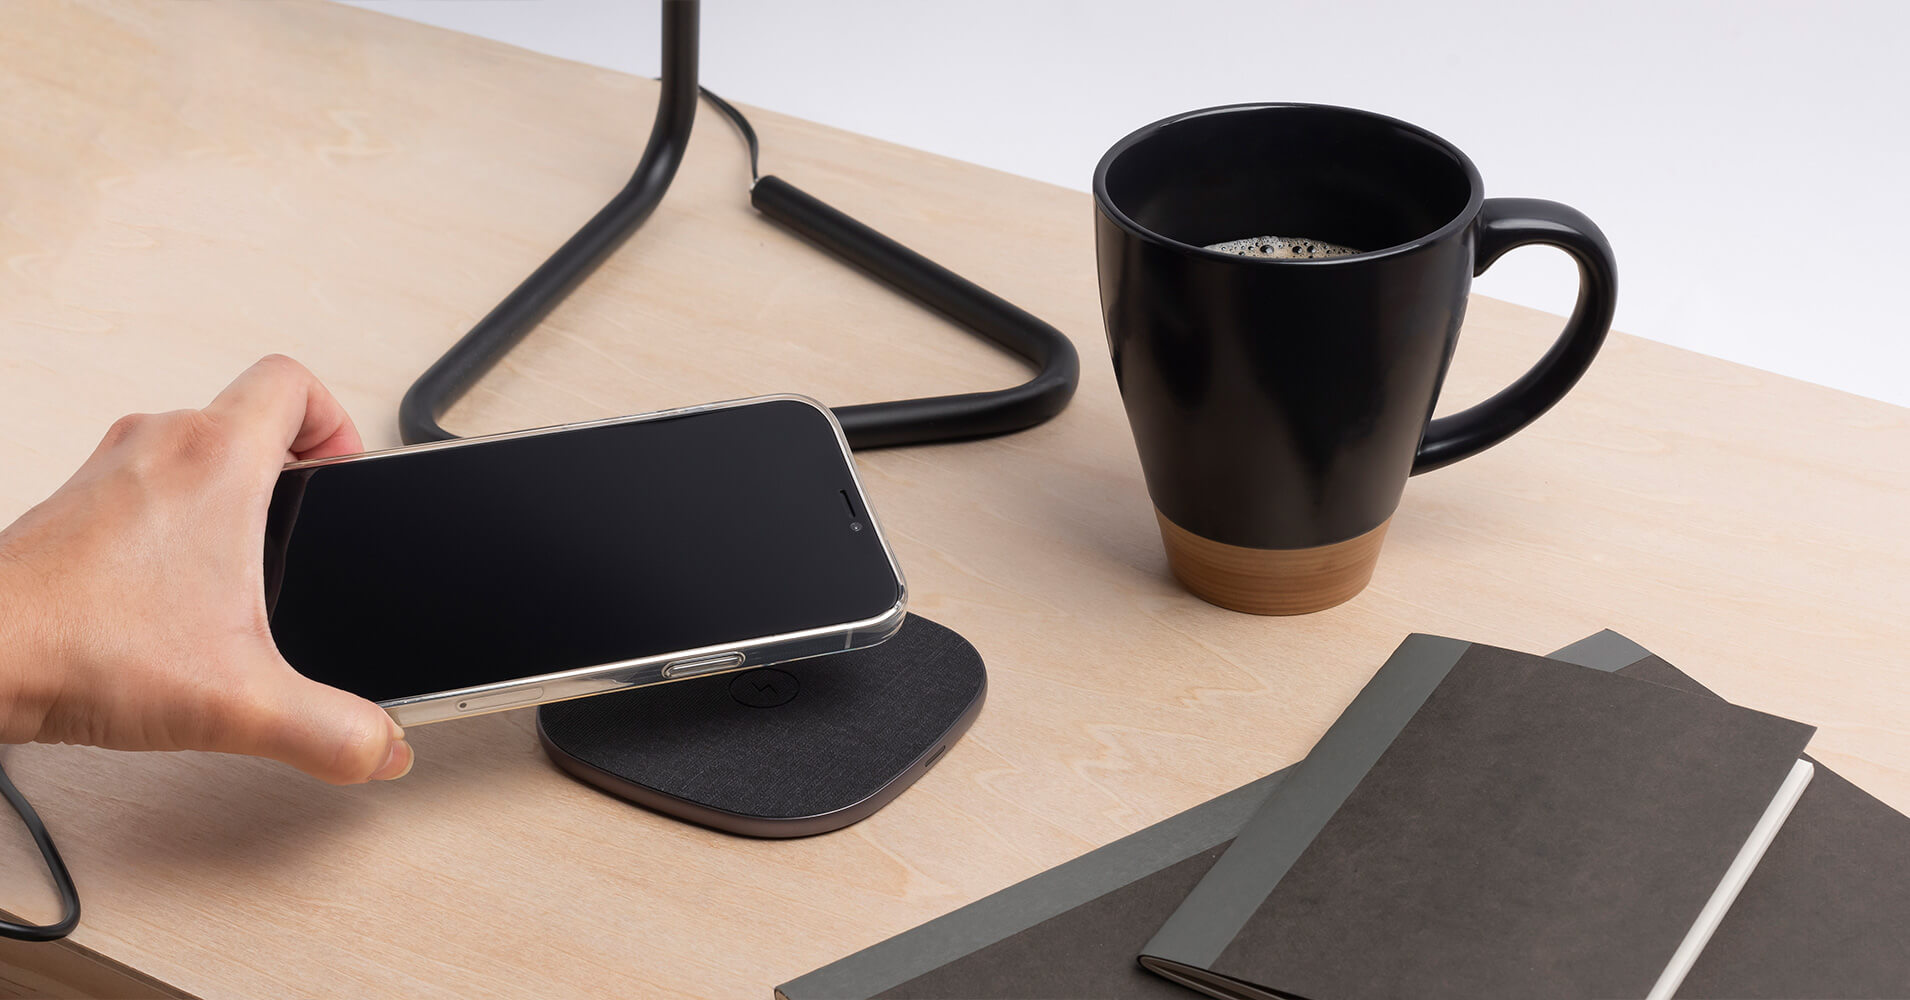 Wireless Charging - Everything You Need to Know